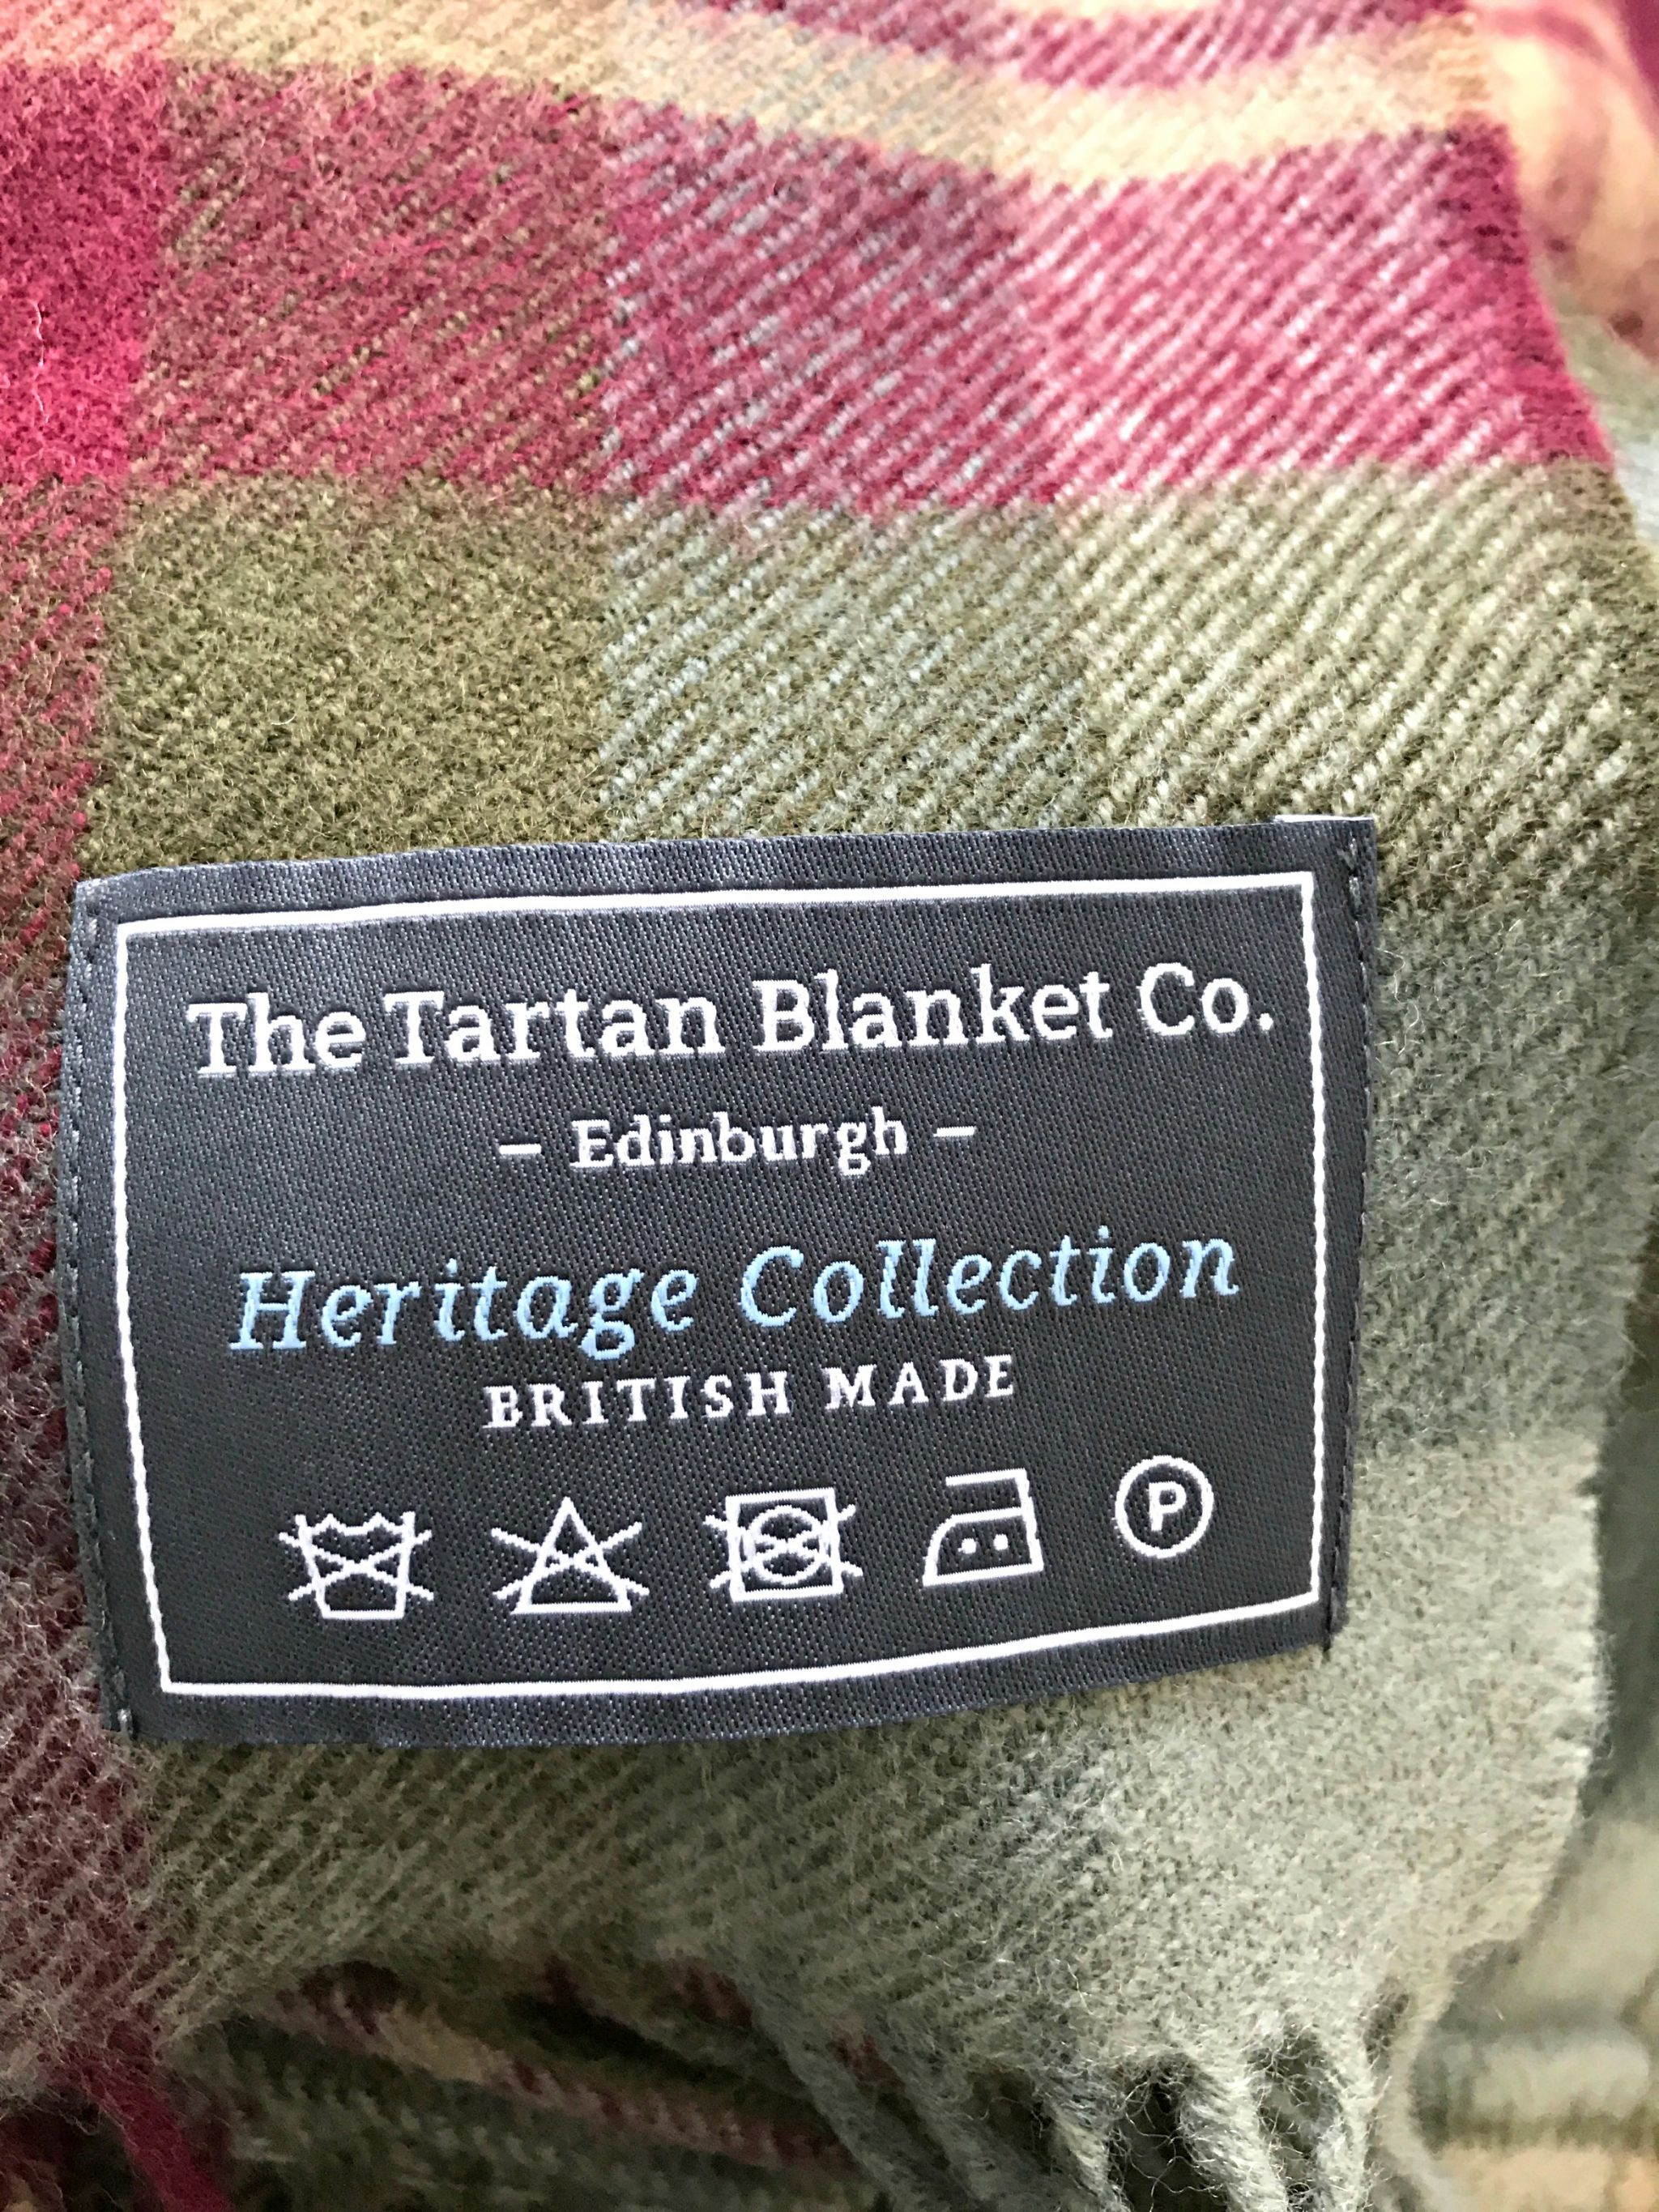 The Tartan Blanket Co. Auld Scotland Blanket Care Label